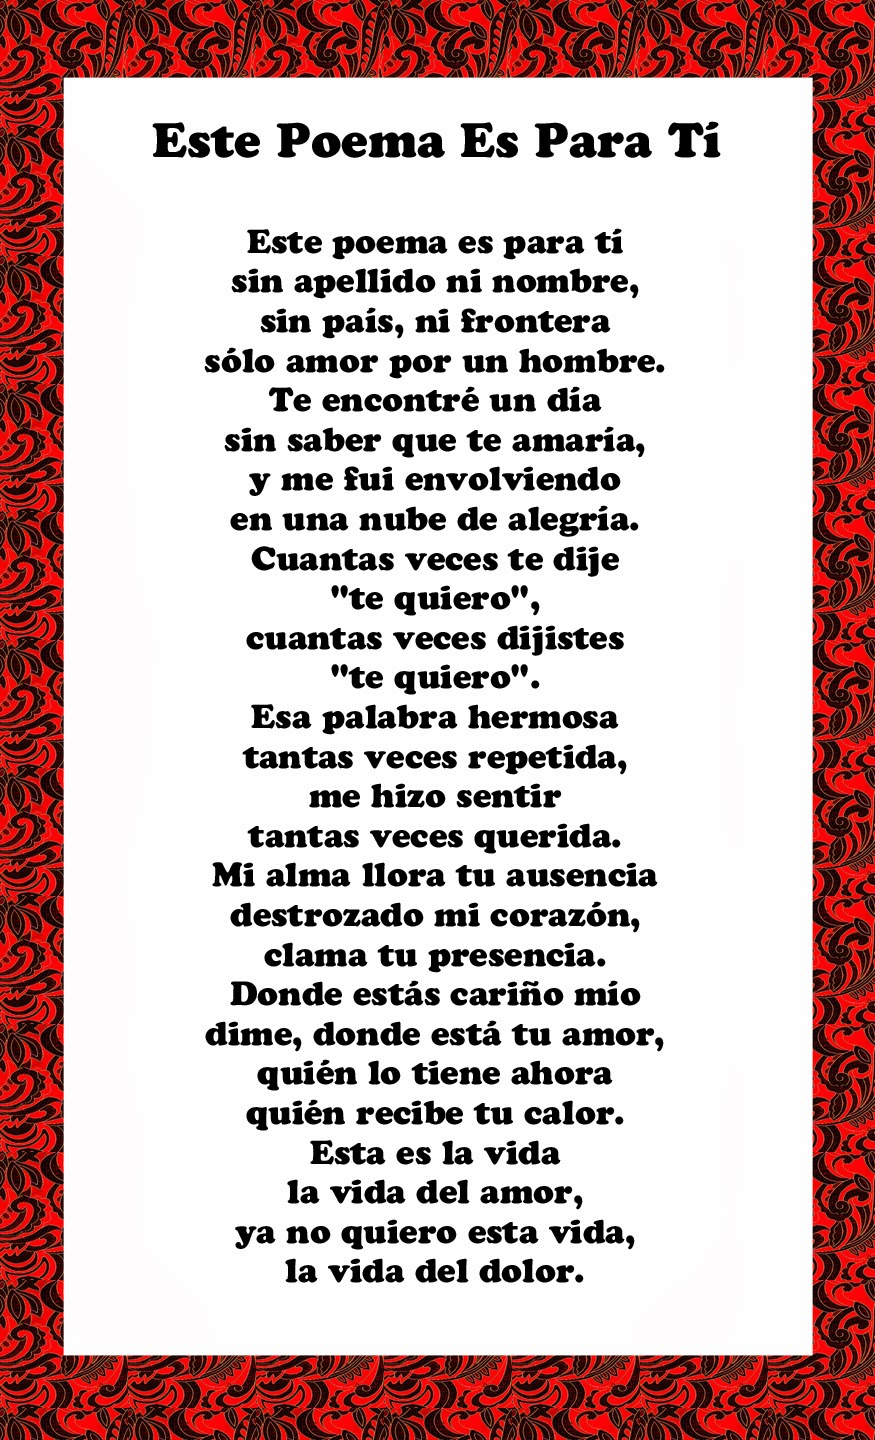 Spanish anniversary poems and quotes quotesgram - Love poems for him in spanish ...